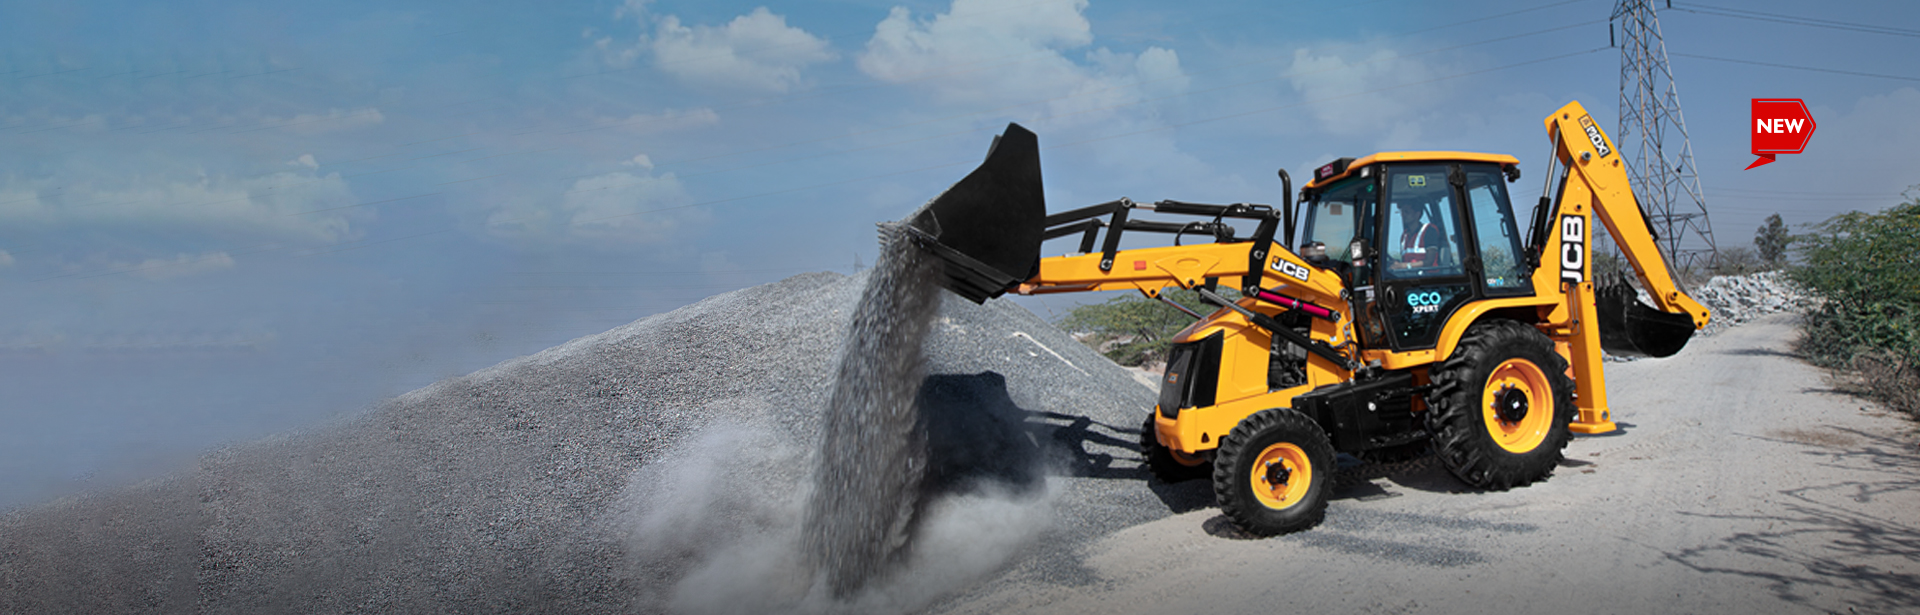 JCB 3DX PLUS Jhansi